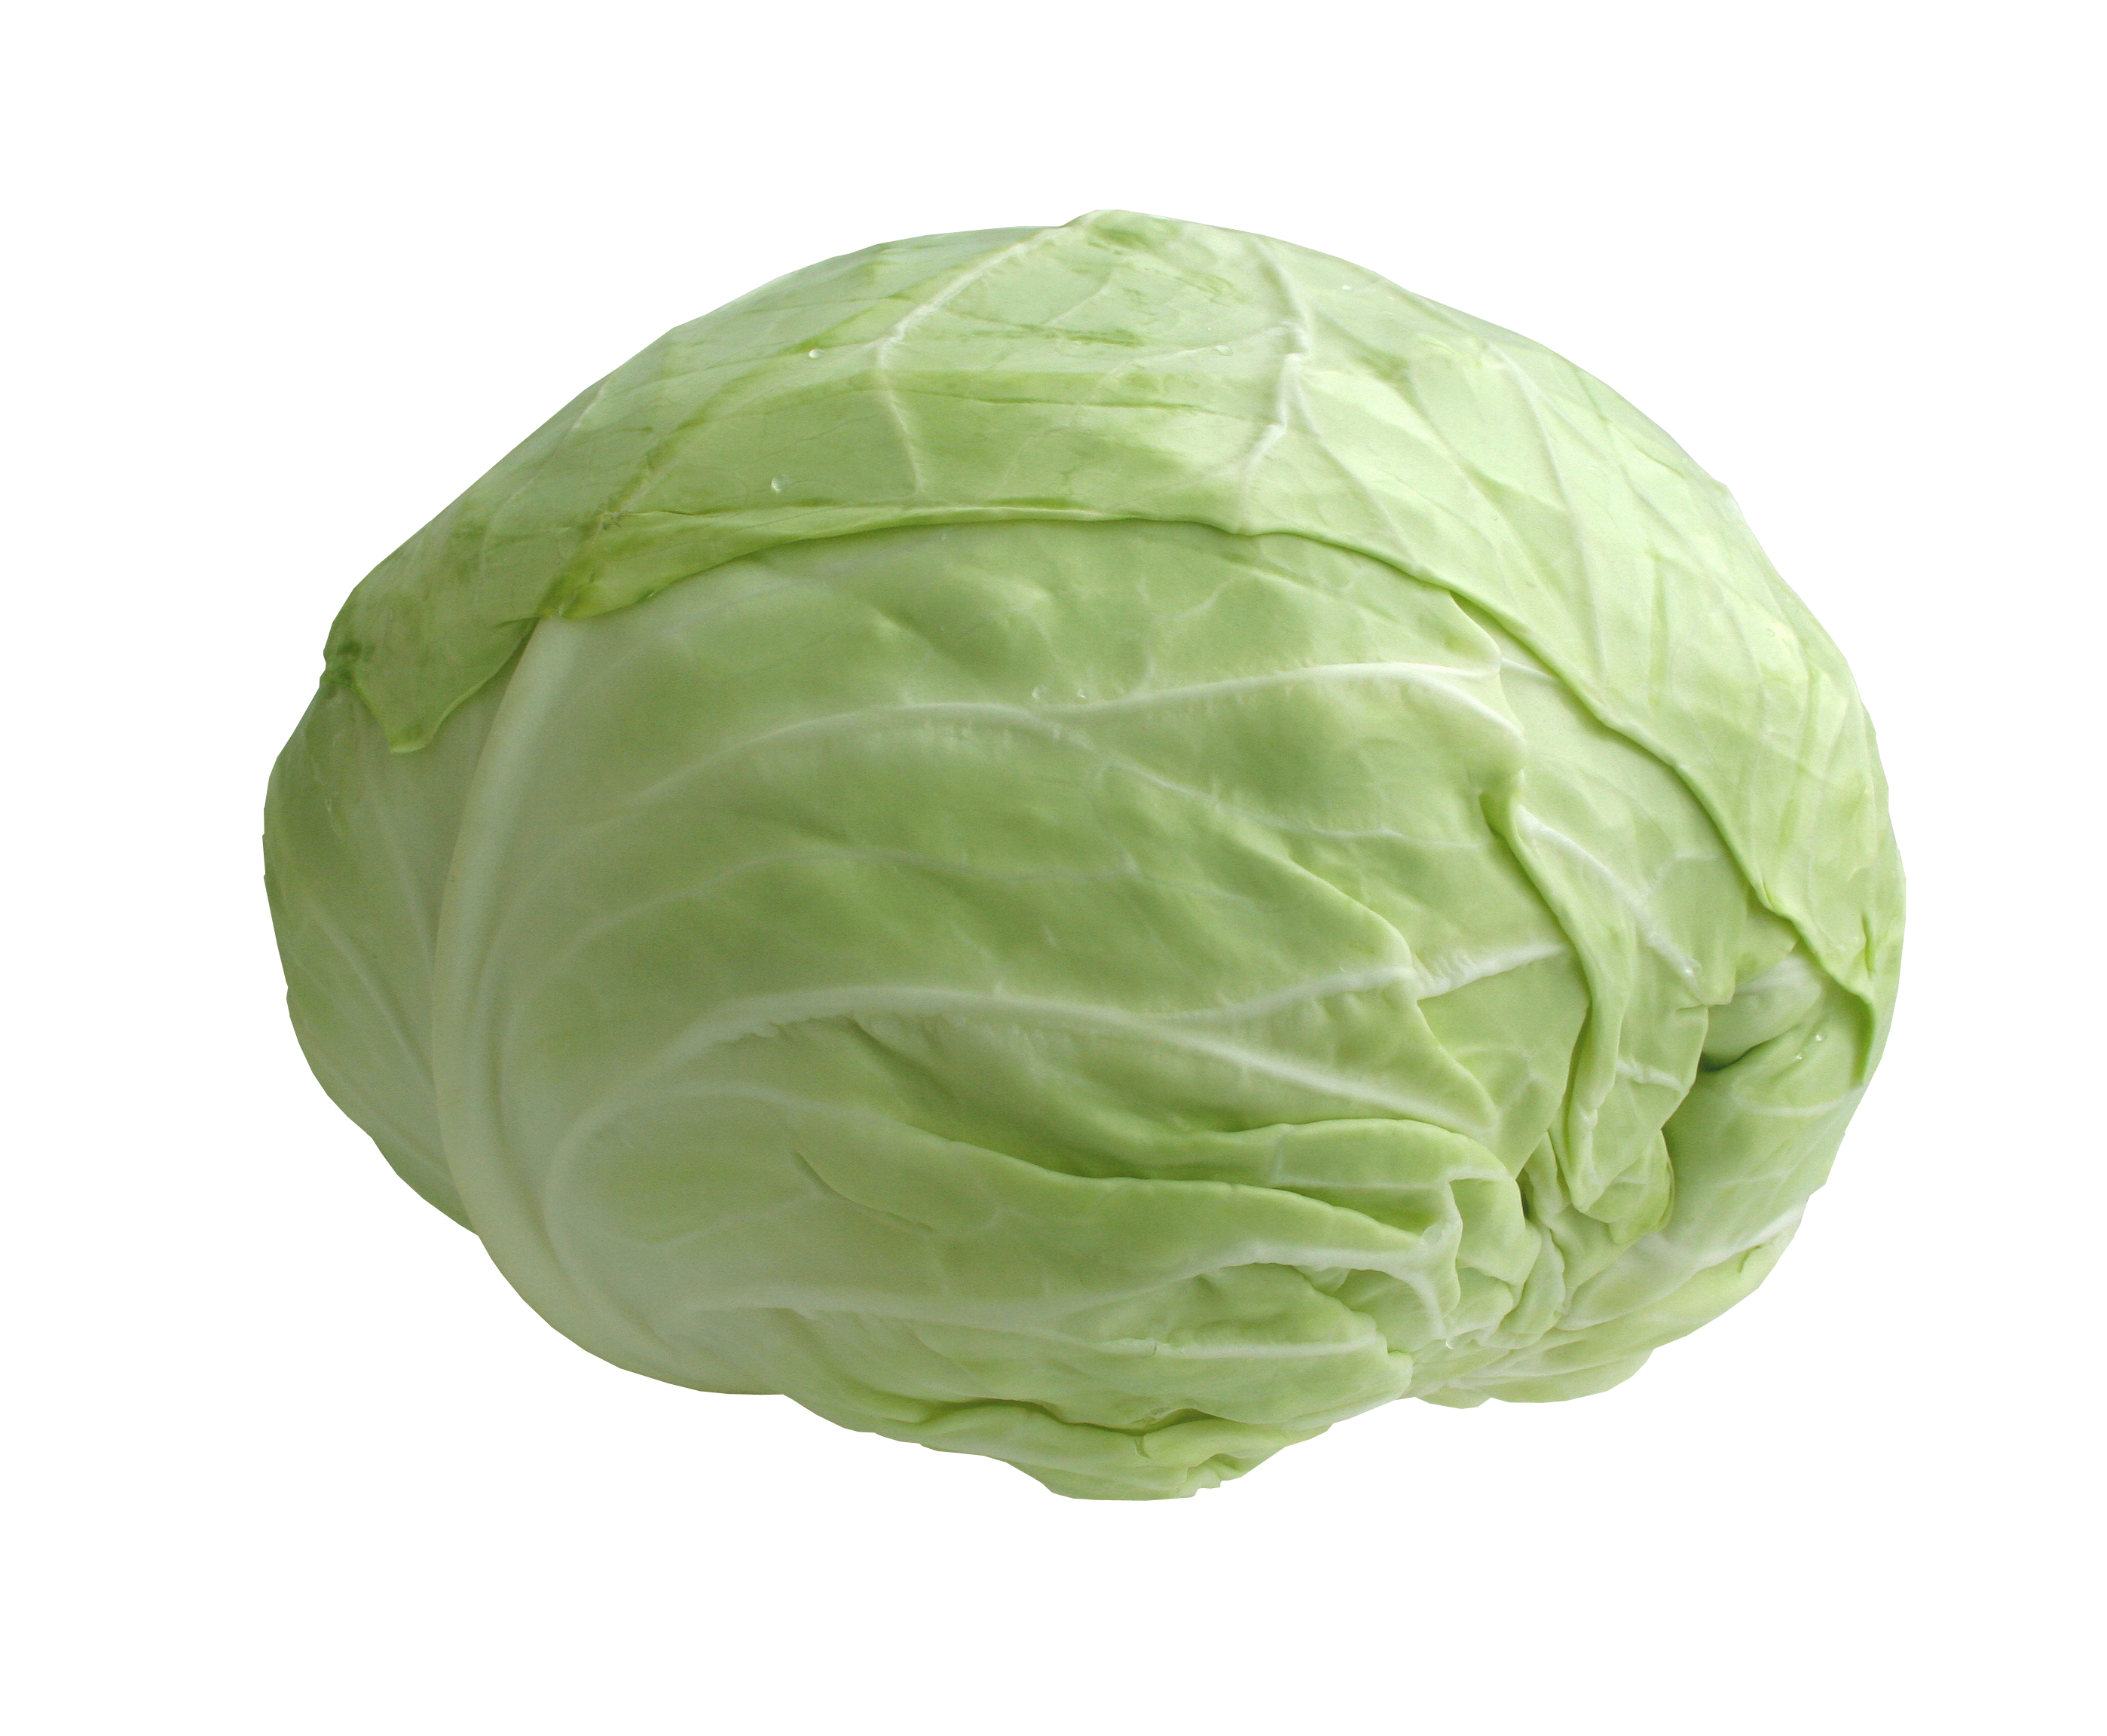 Cabbage - 13 photo